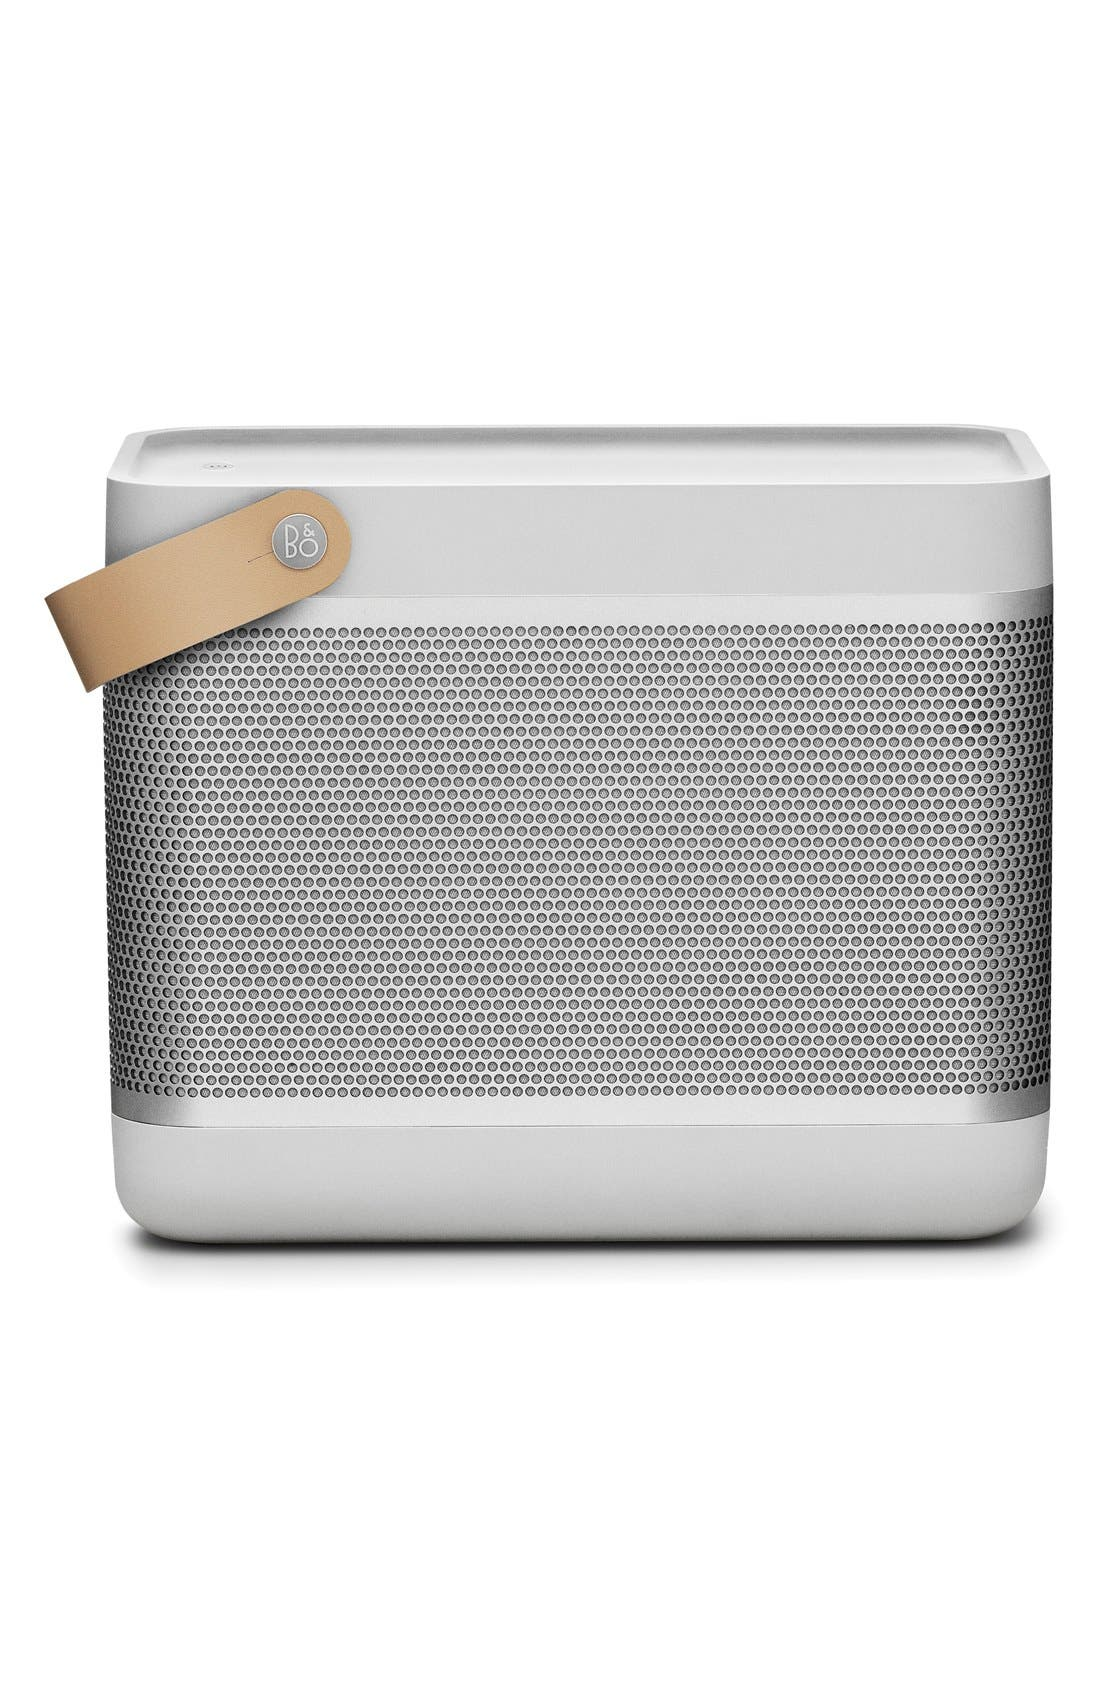 'Beolit 15' Portable Bluetooth<sup>®</sup> Speaker,                         Main,                         color, 040